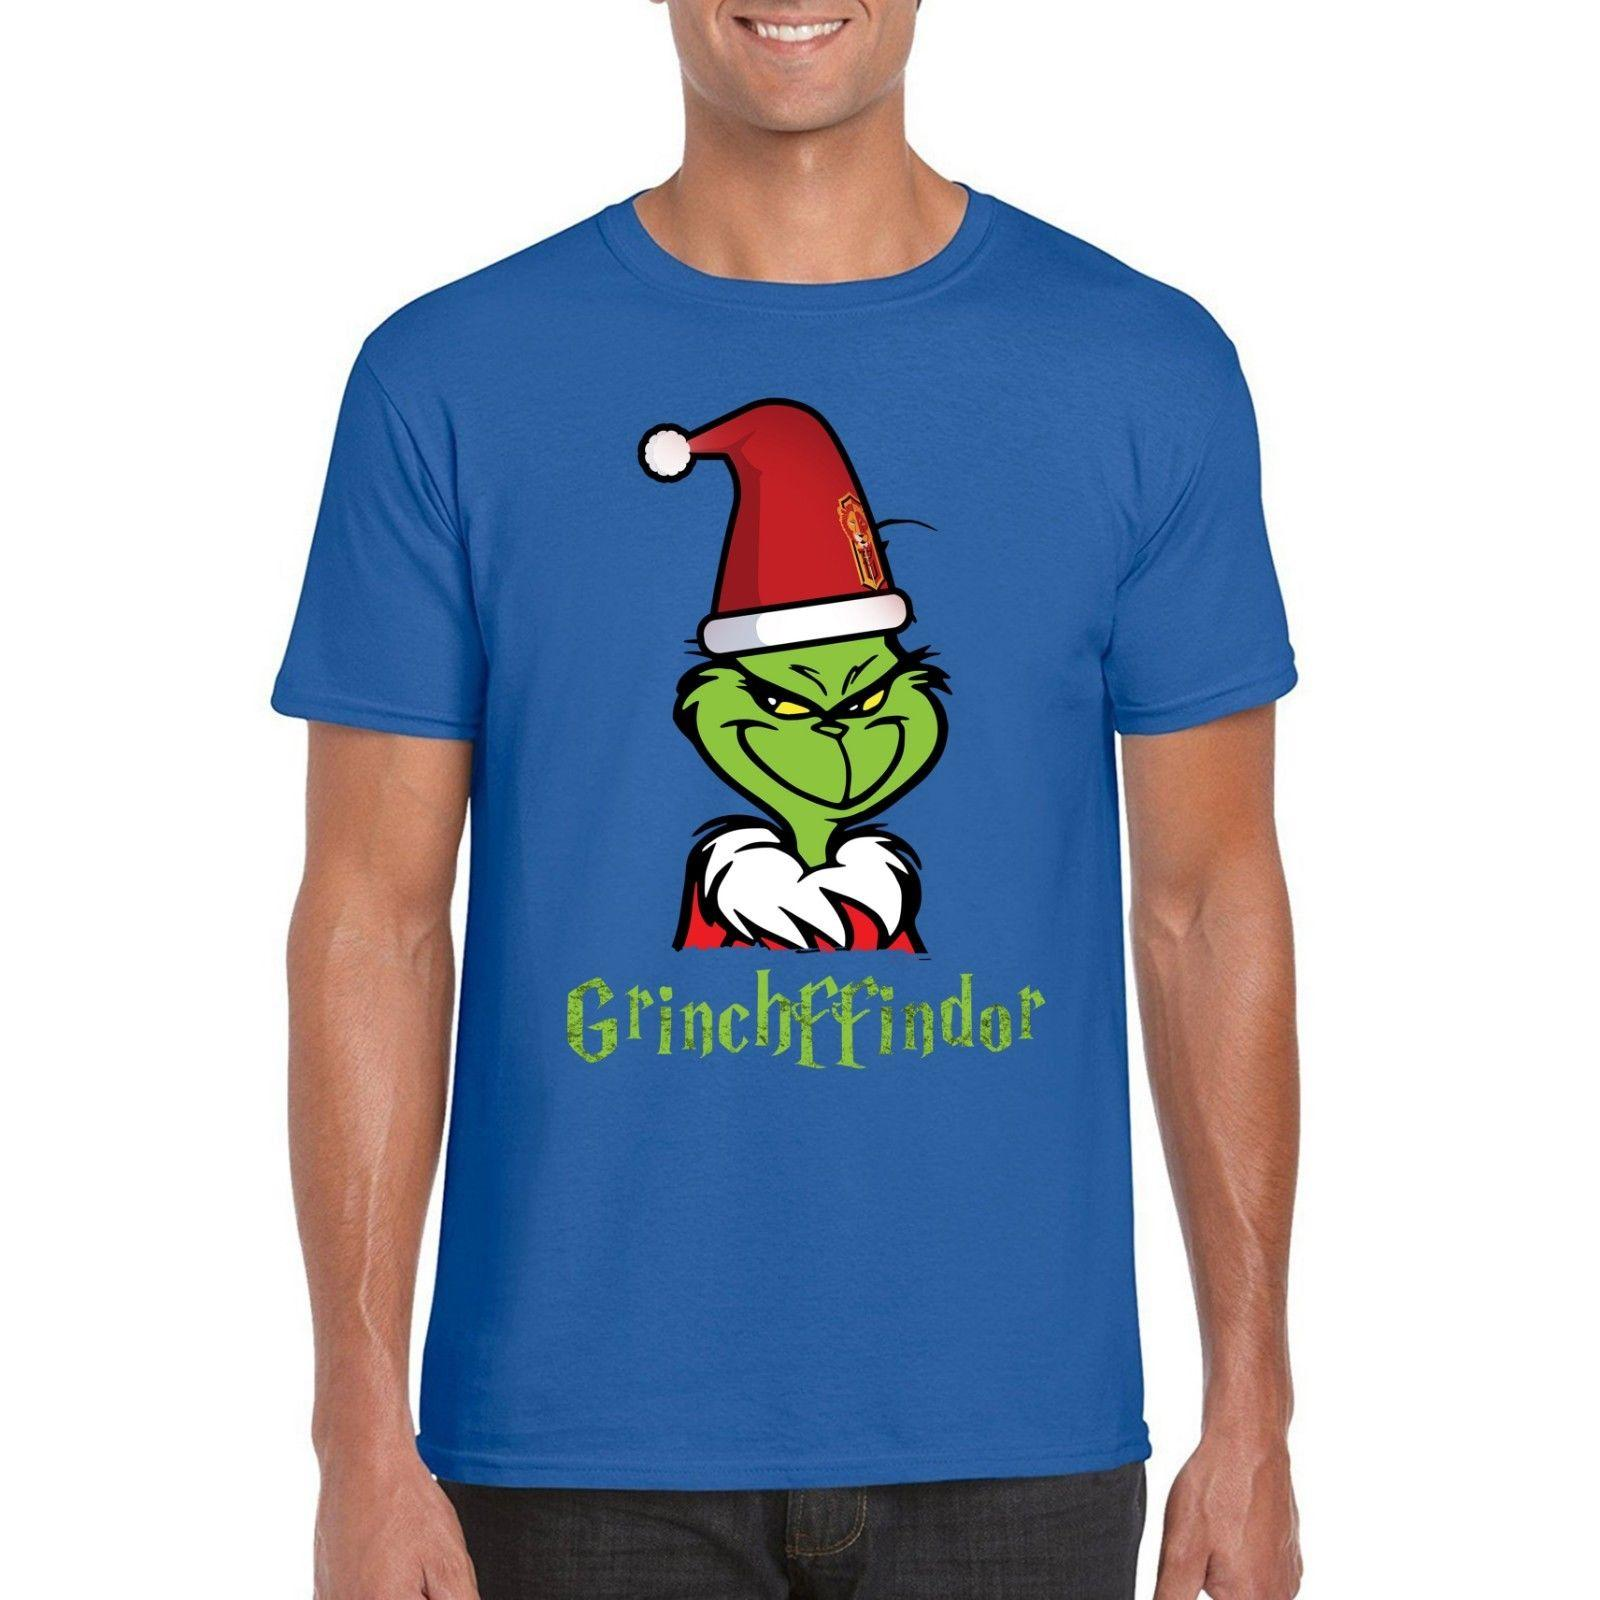 Harry Potter Christmas Shirt.Grinchffindor Christmas T Shirt Harry Potter Grinch Festive Parody Tee Top Funny Free Shipping Unisex Gift